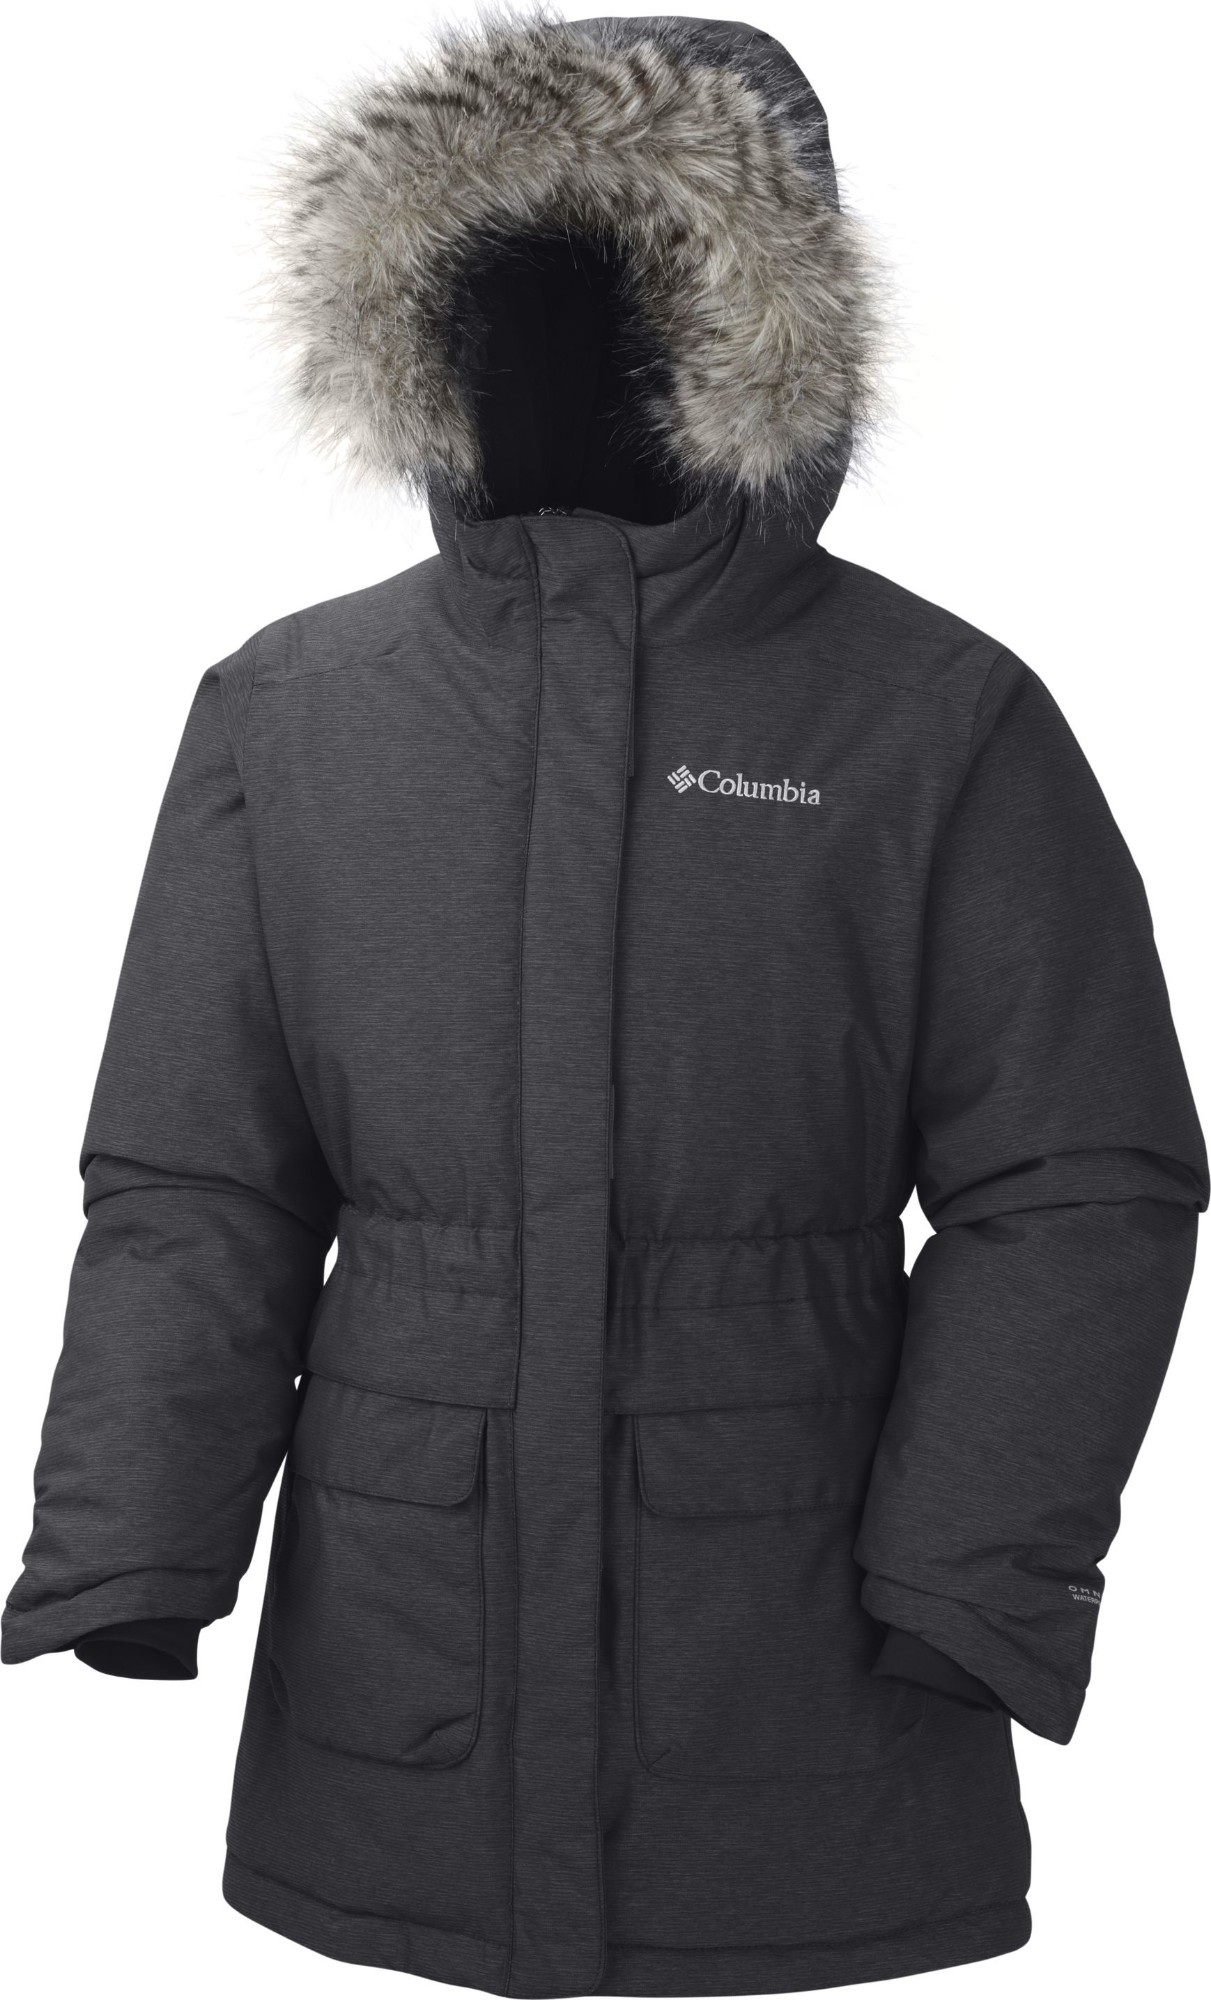 Columbia Nordic Strider Jacket Girls Black 152